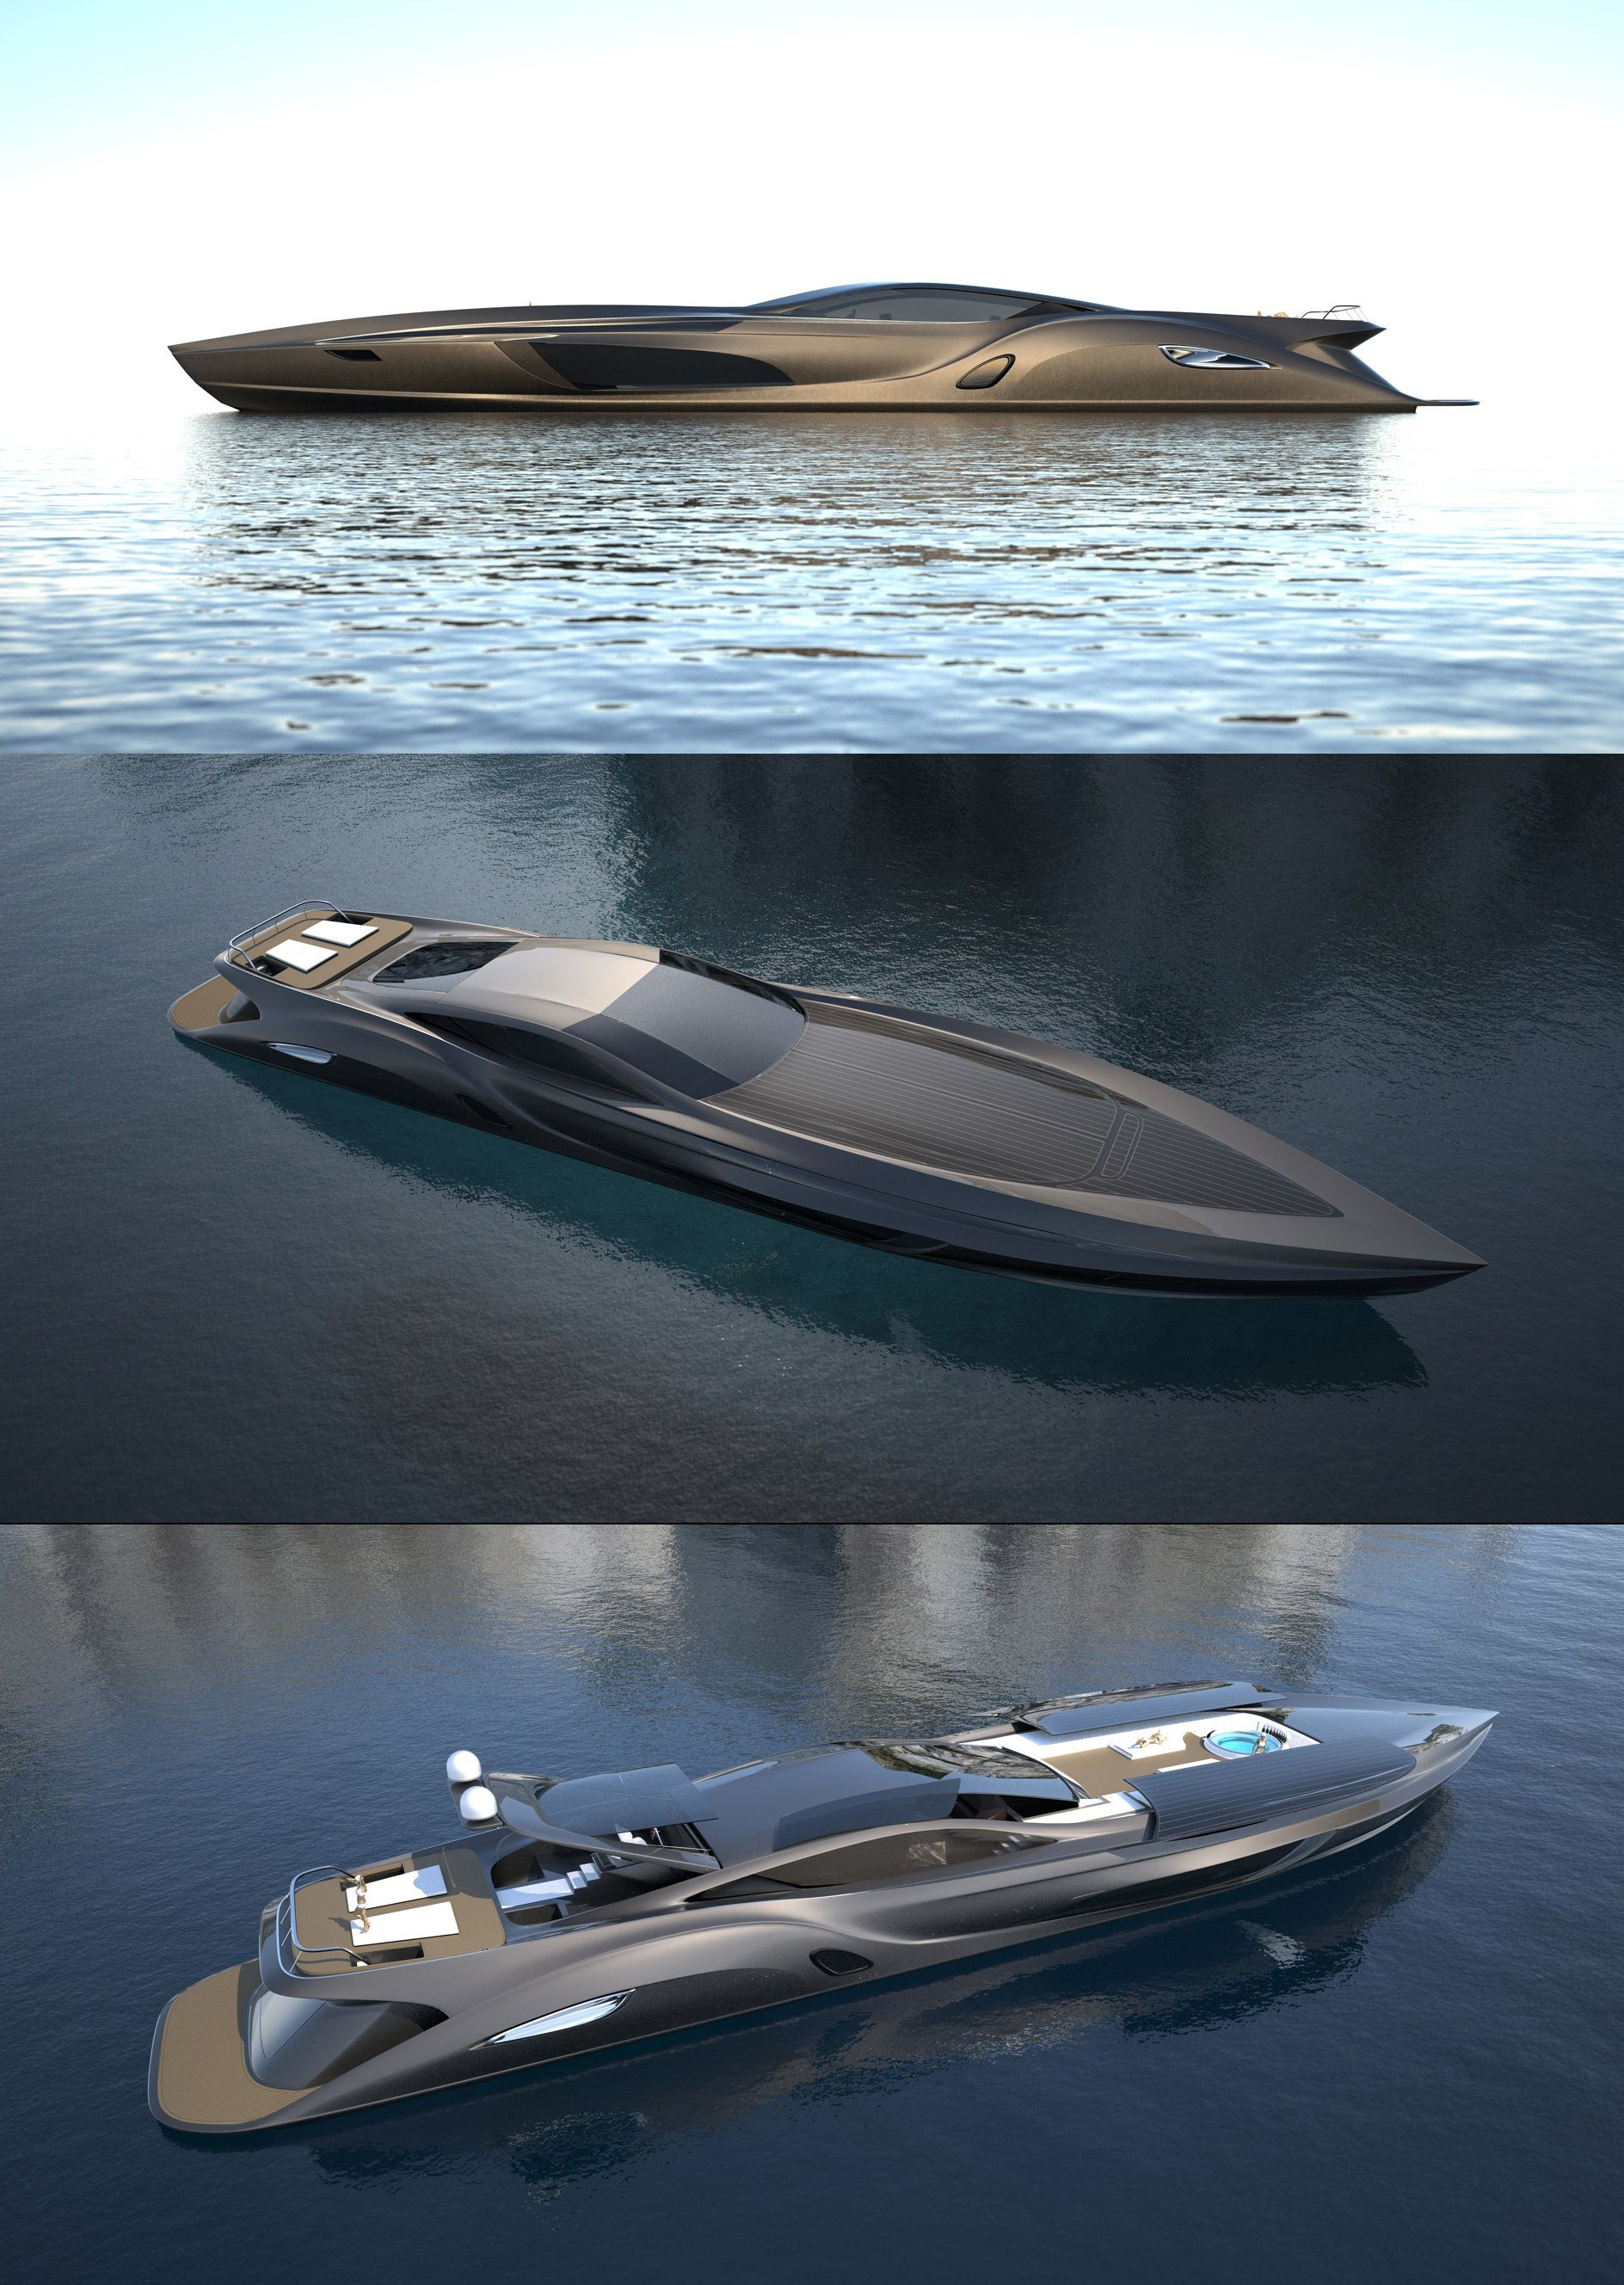 Strand craft 166 yacht designed by gray design